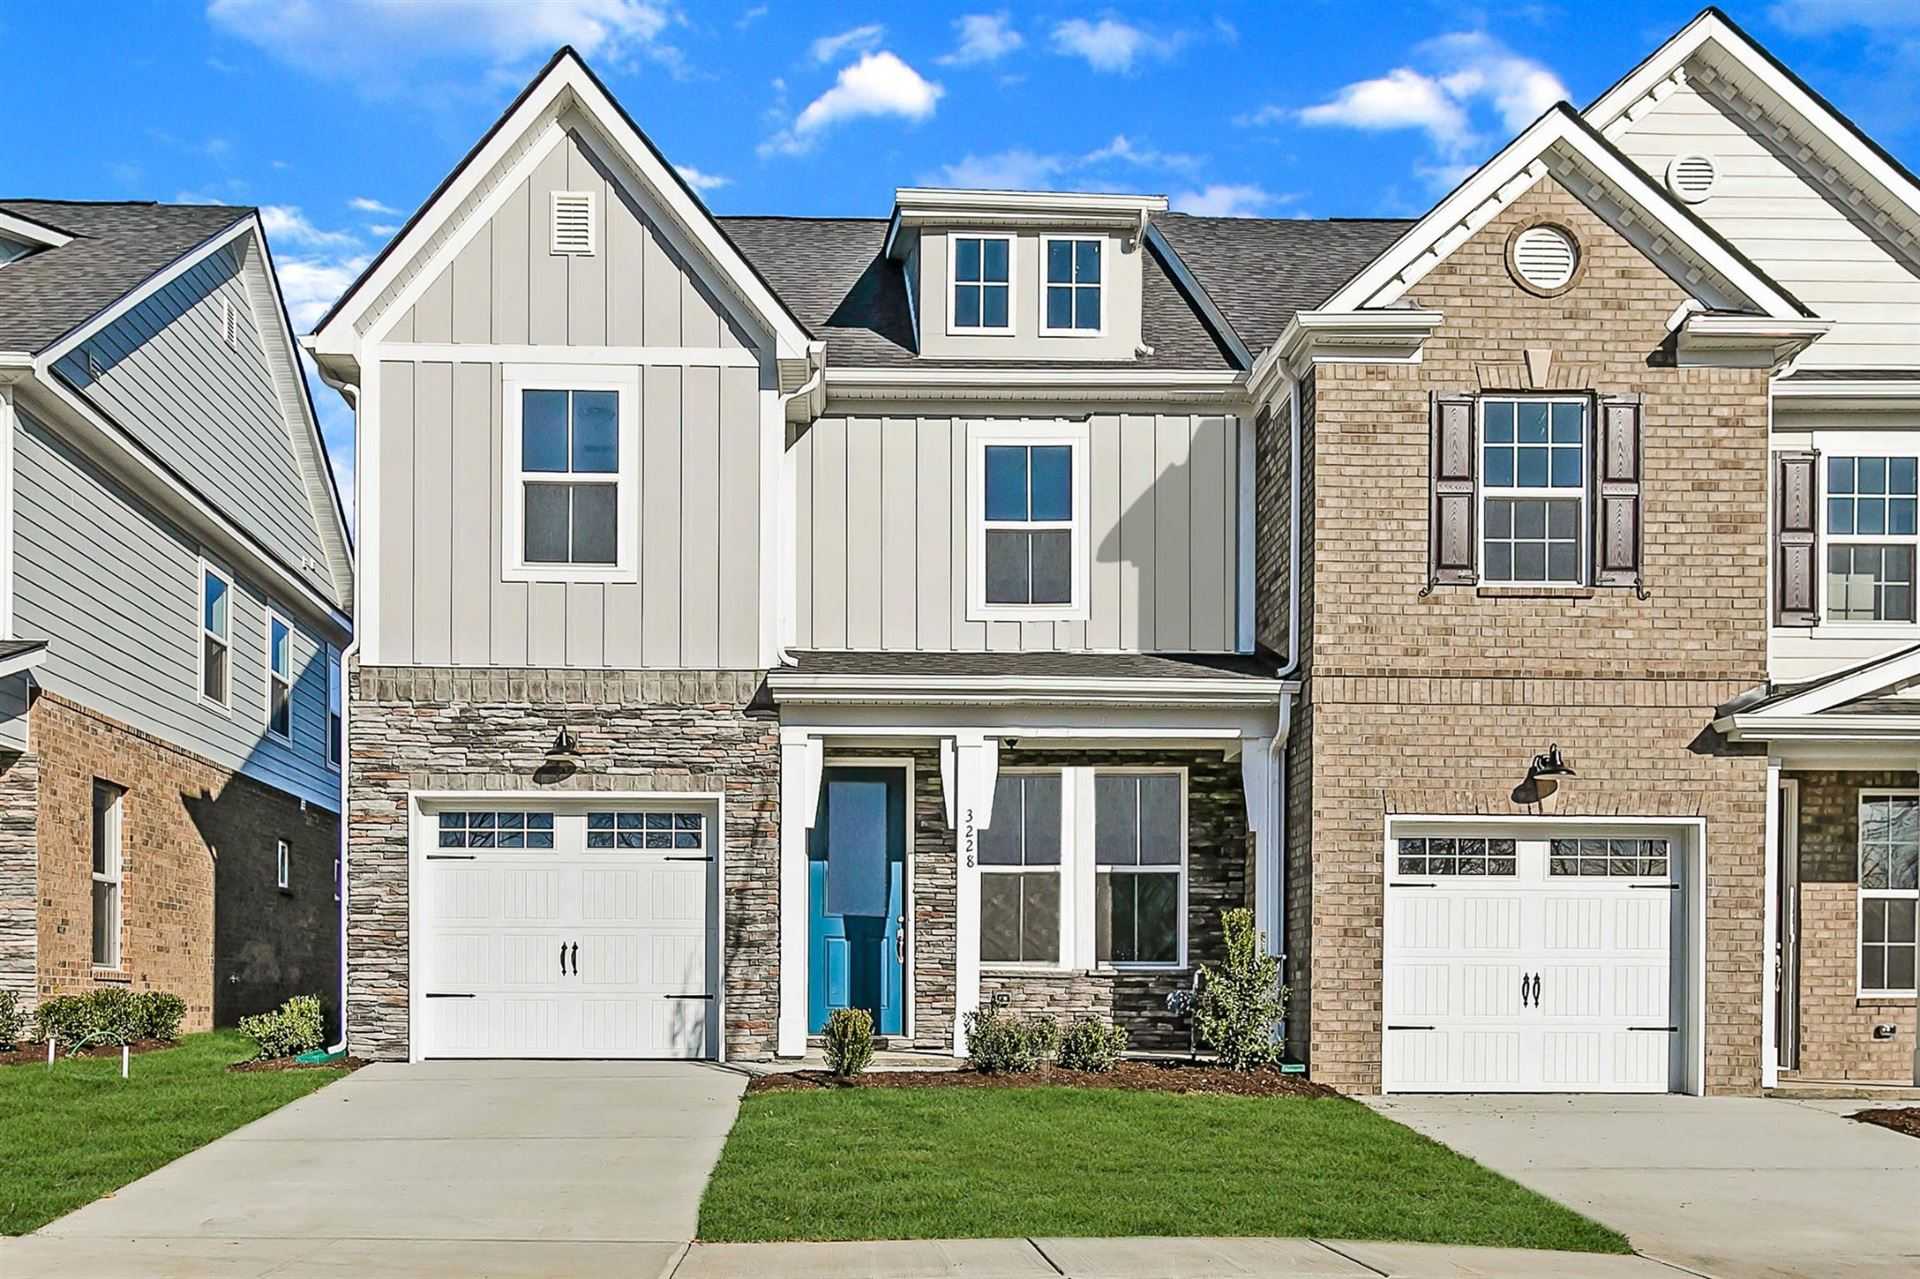 3228 Brookberry Ln, Murfreesboro, TN 37129 - MLS#: 2219875